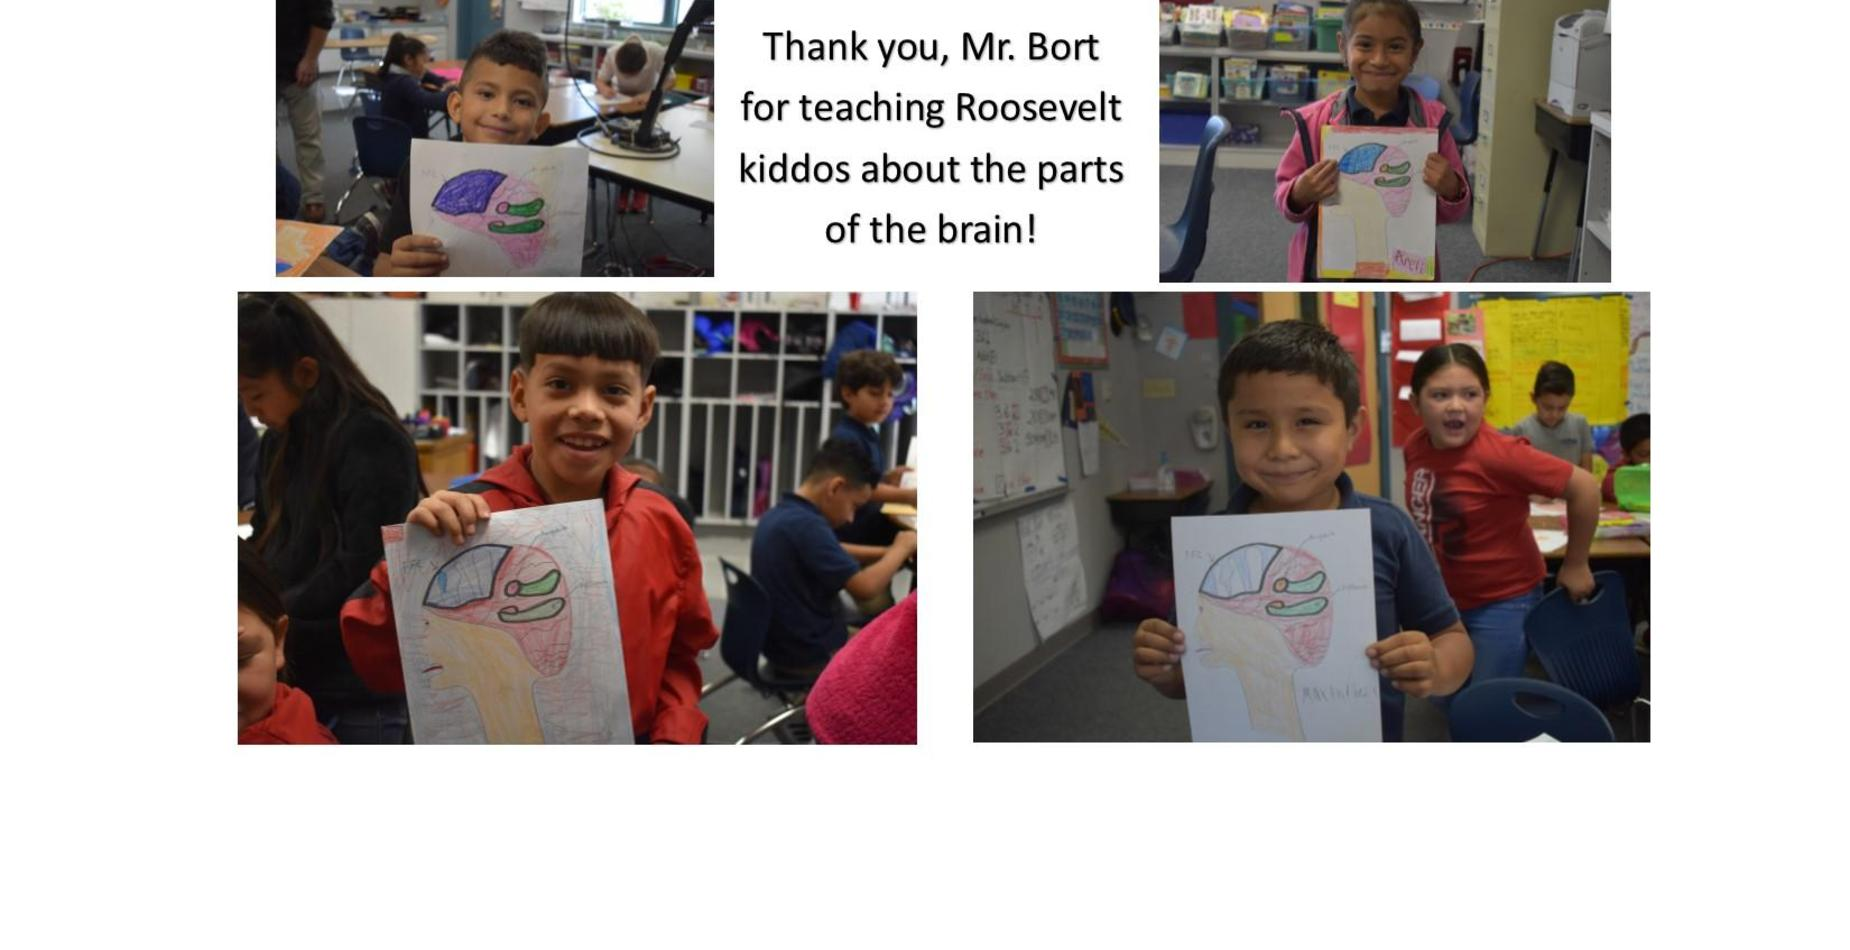 Thank you Mr. bort for teaching our students about the brain.  There are four students holding pictures they drew and labeled of the brain.